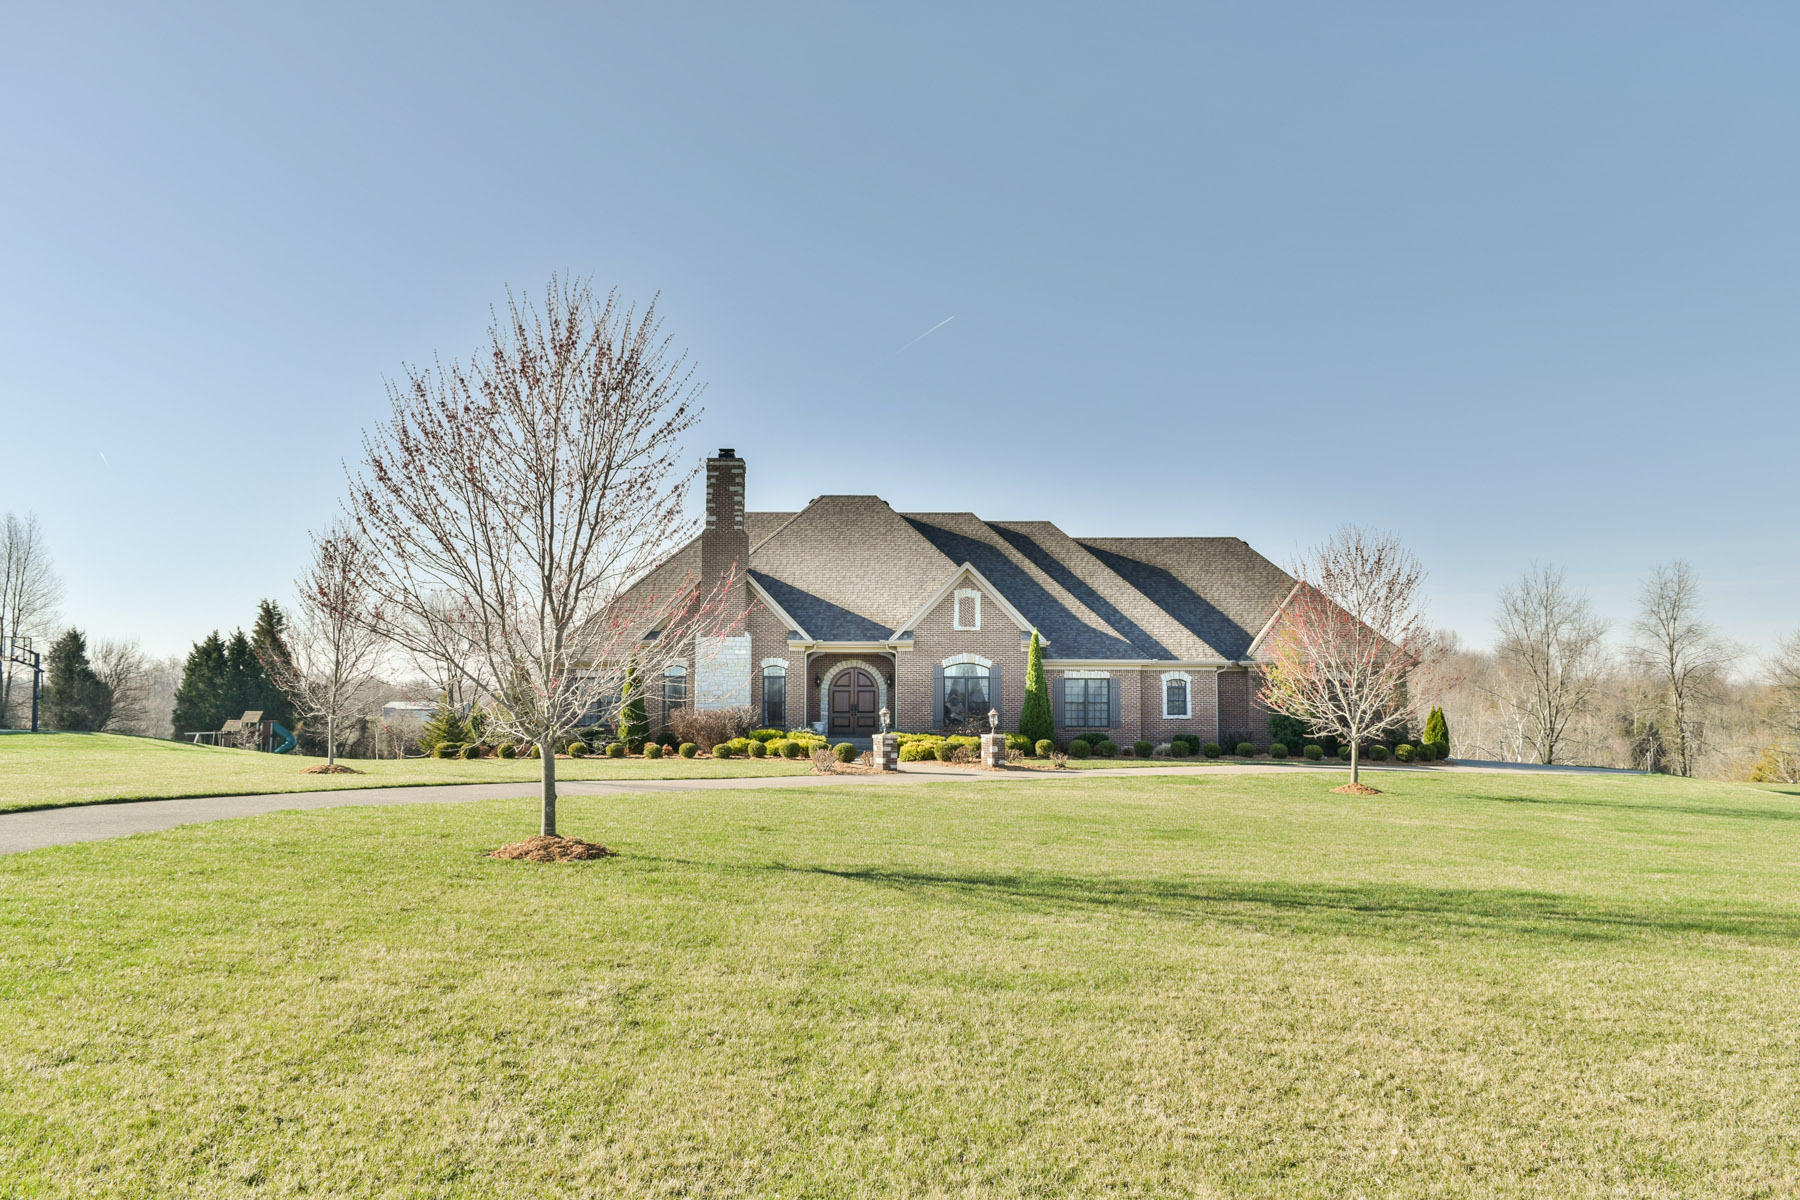 Single Family Home for Sale at 9607 W. View Court Crestwood, Kentucky 40014 United States